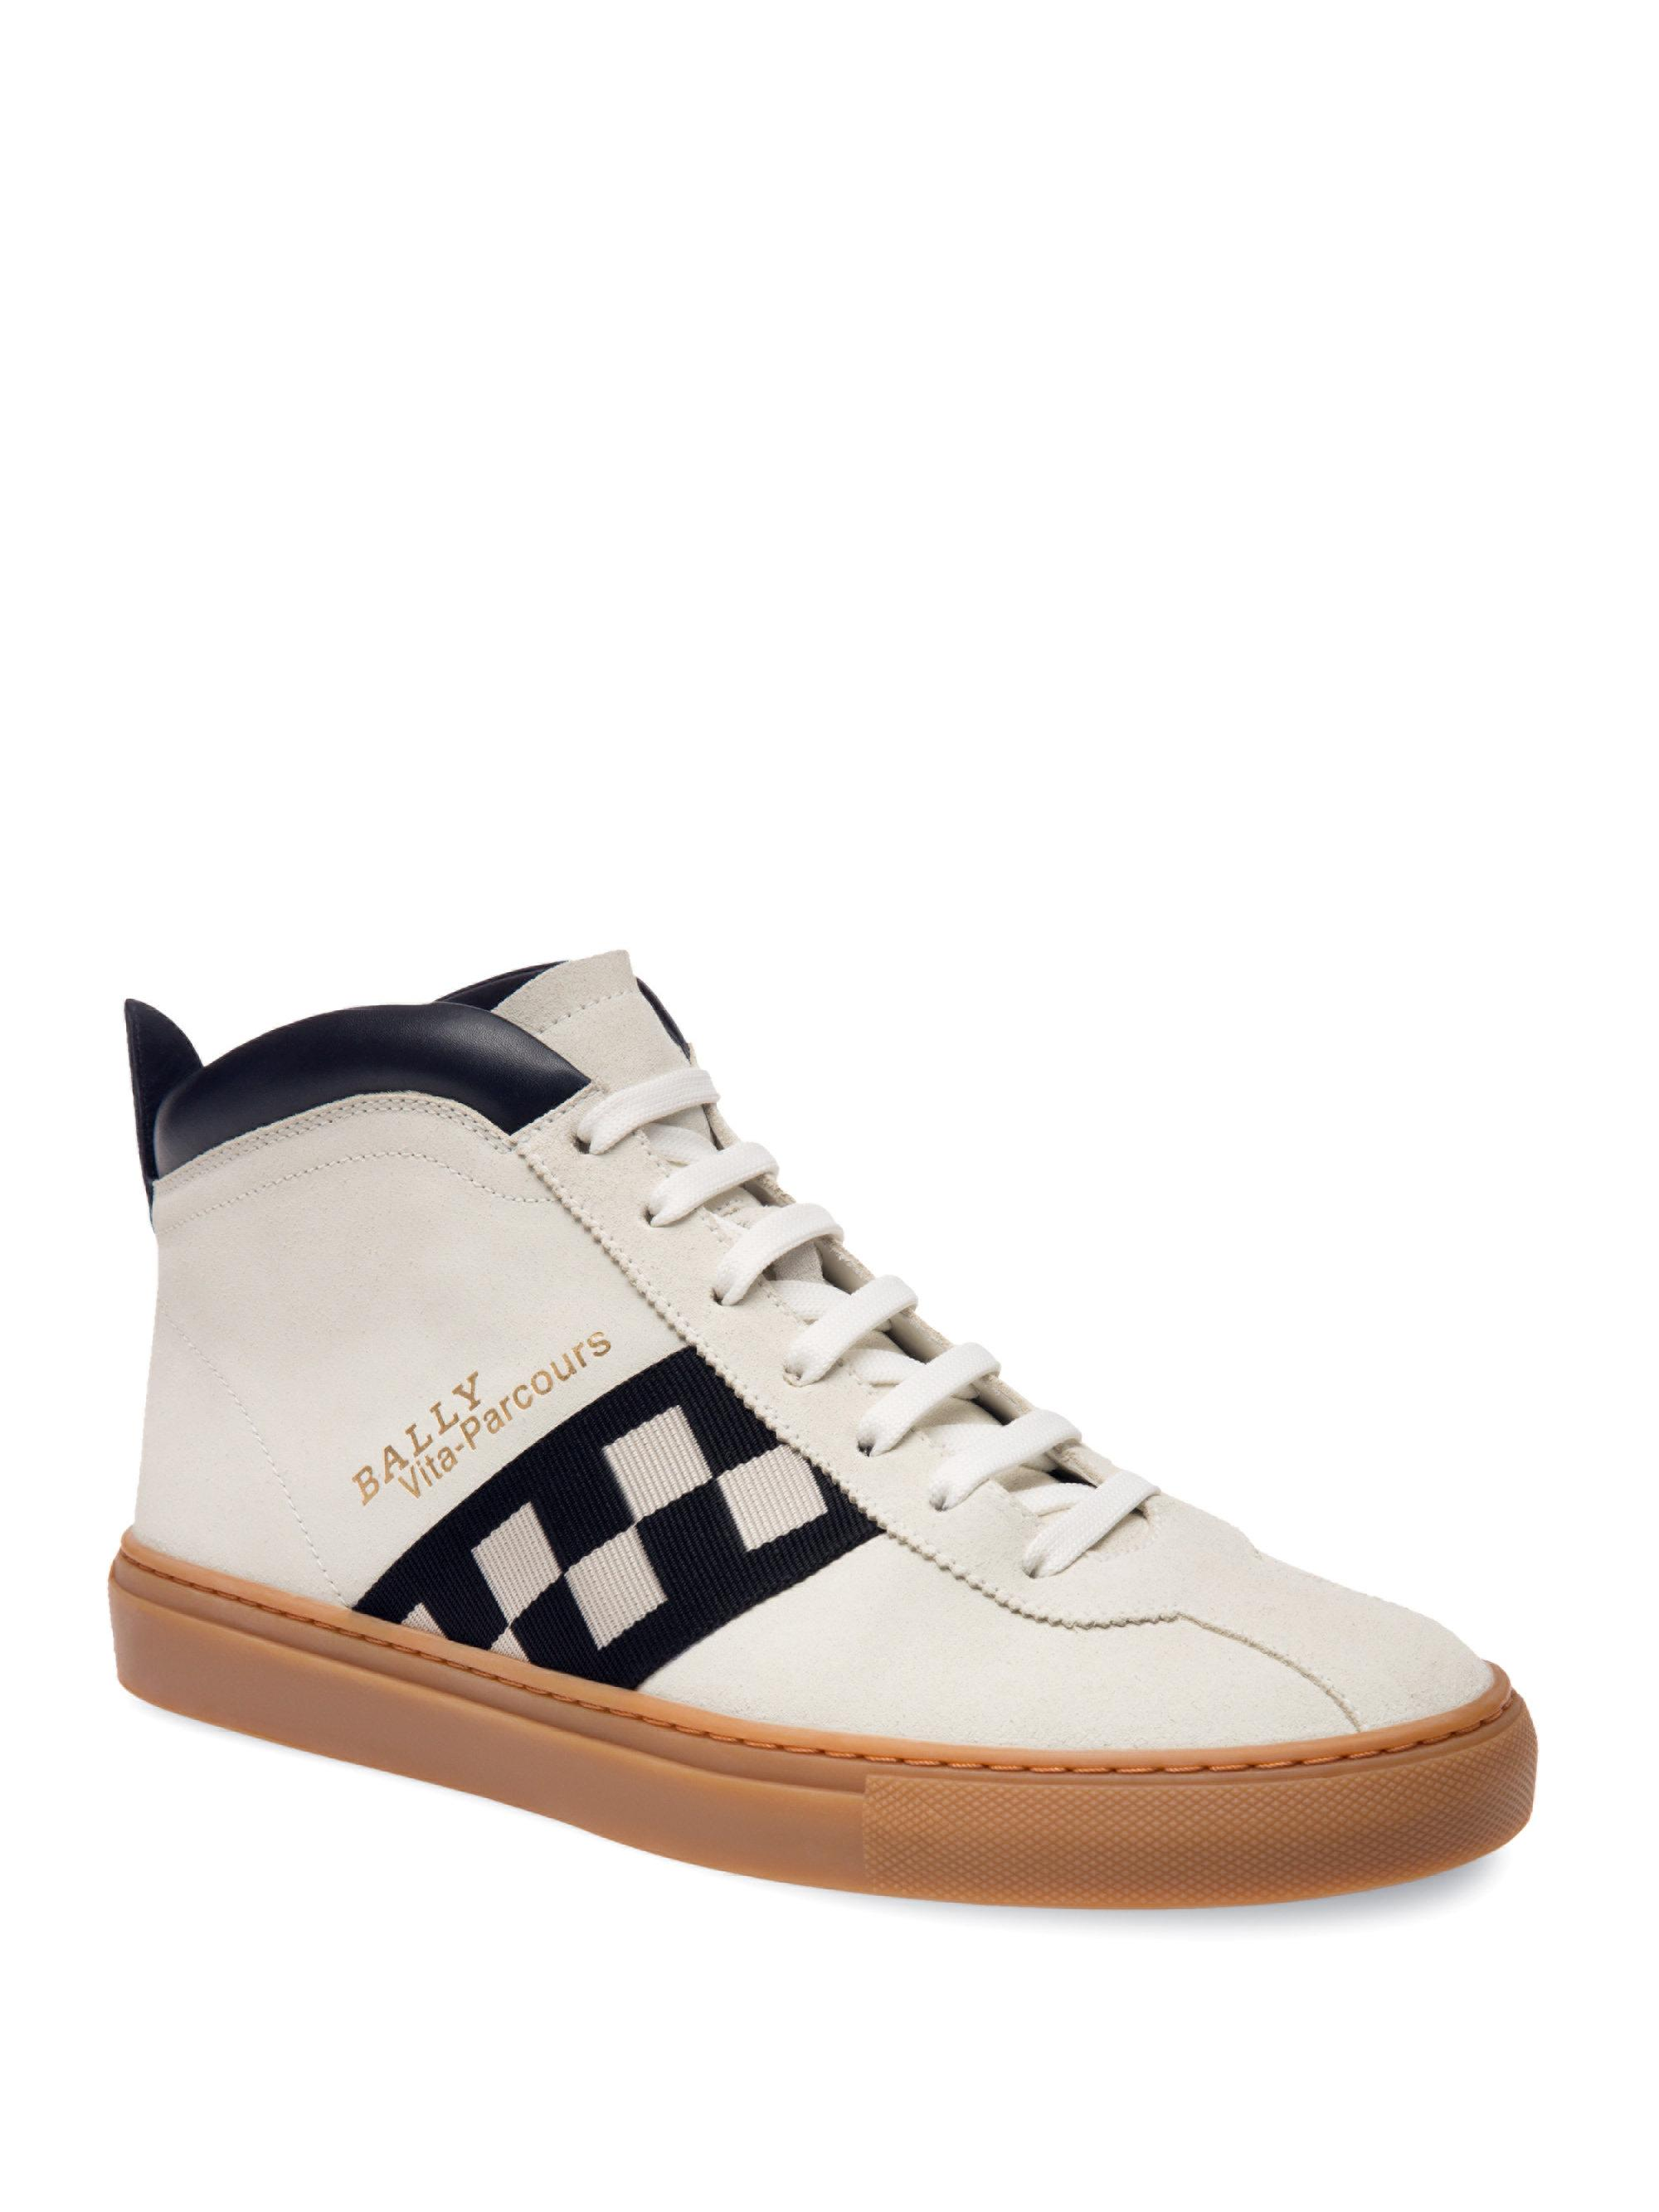 BallyVita-Parcours Retro Leather High-Top Sneakers